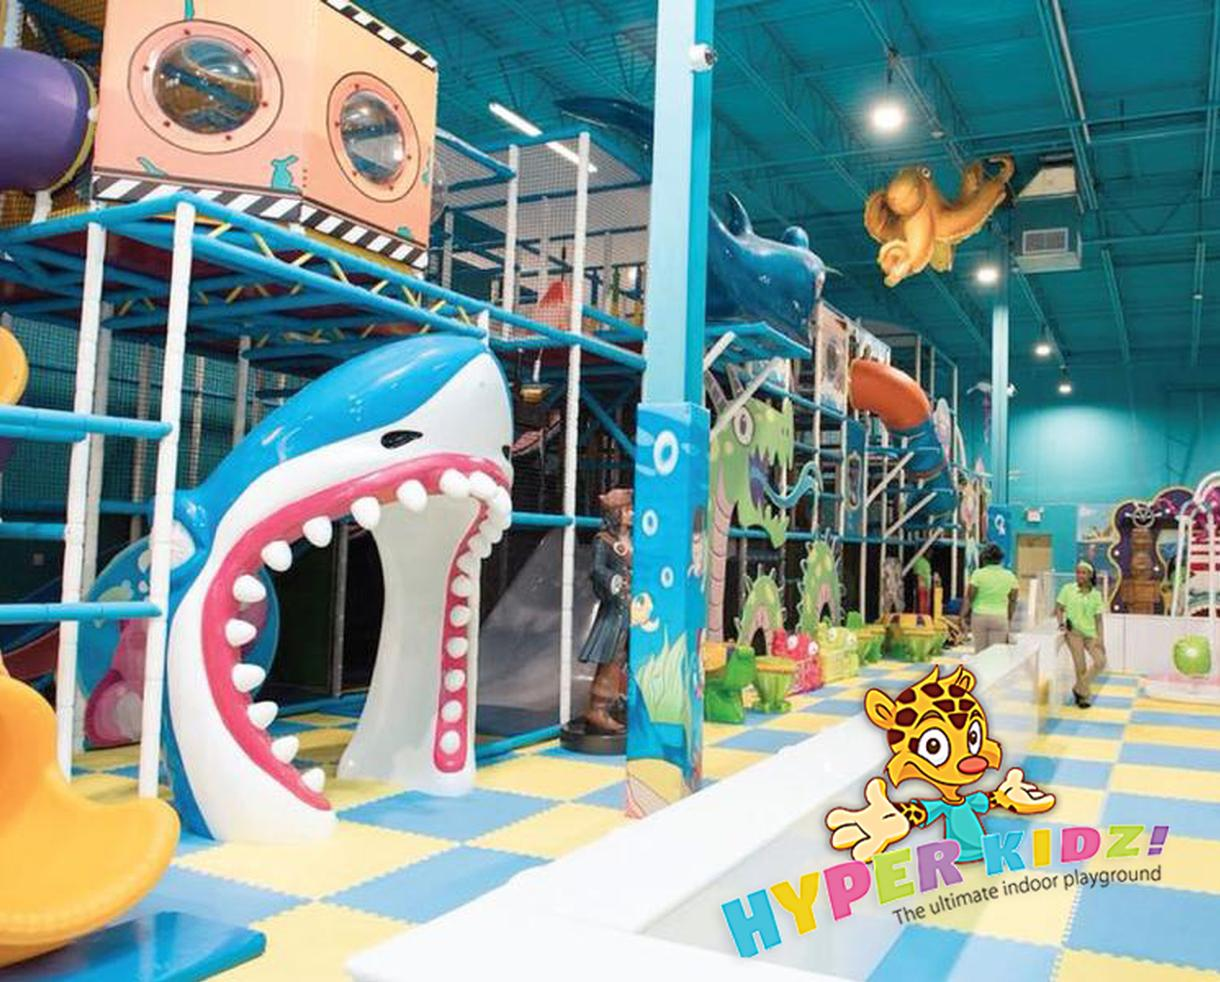 Hyper Kidz Indoor Playground 2-For-1 Admission